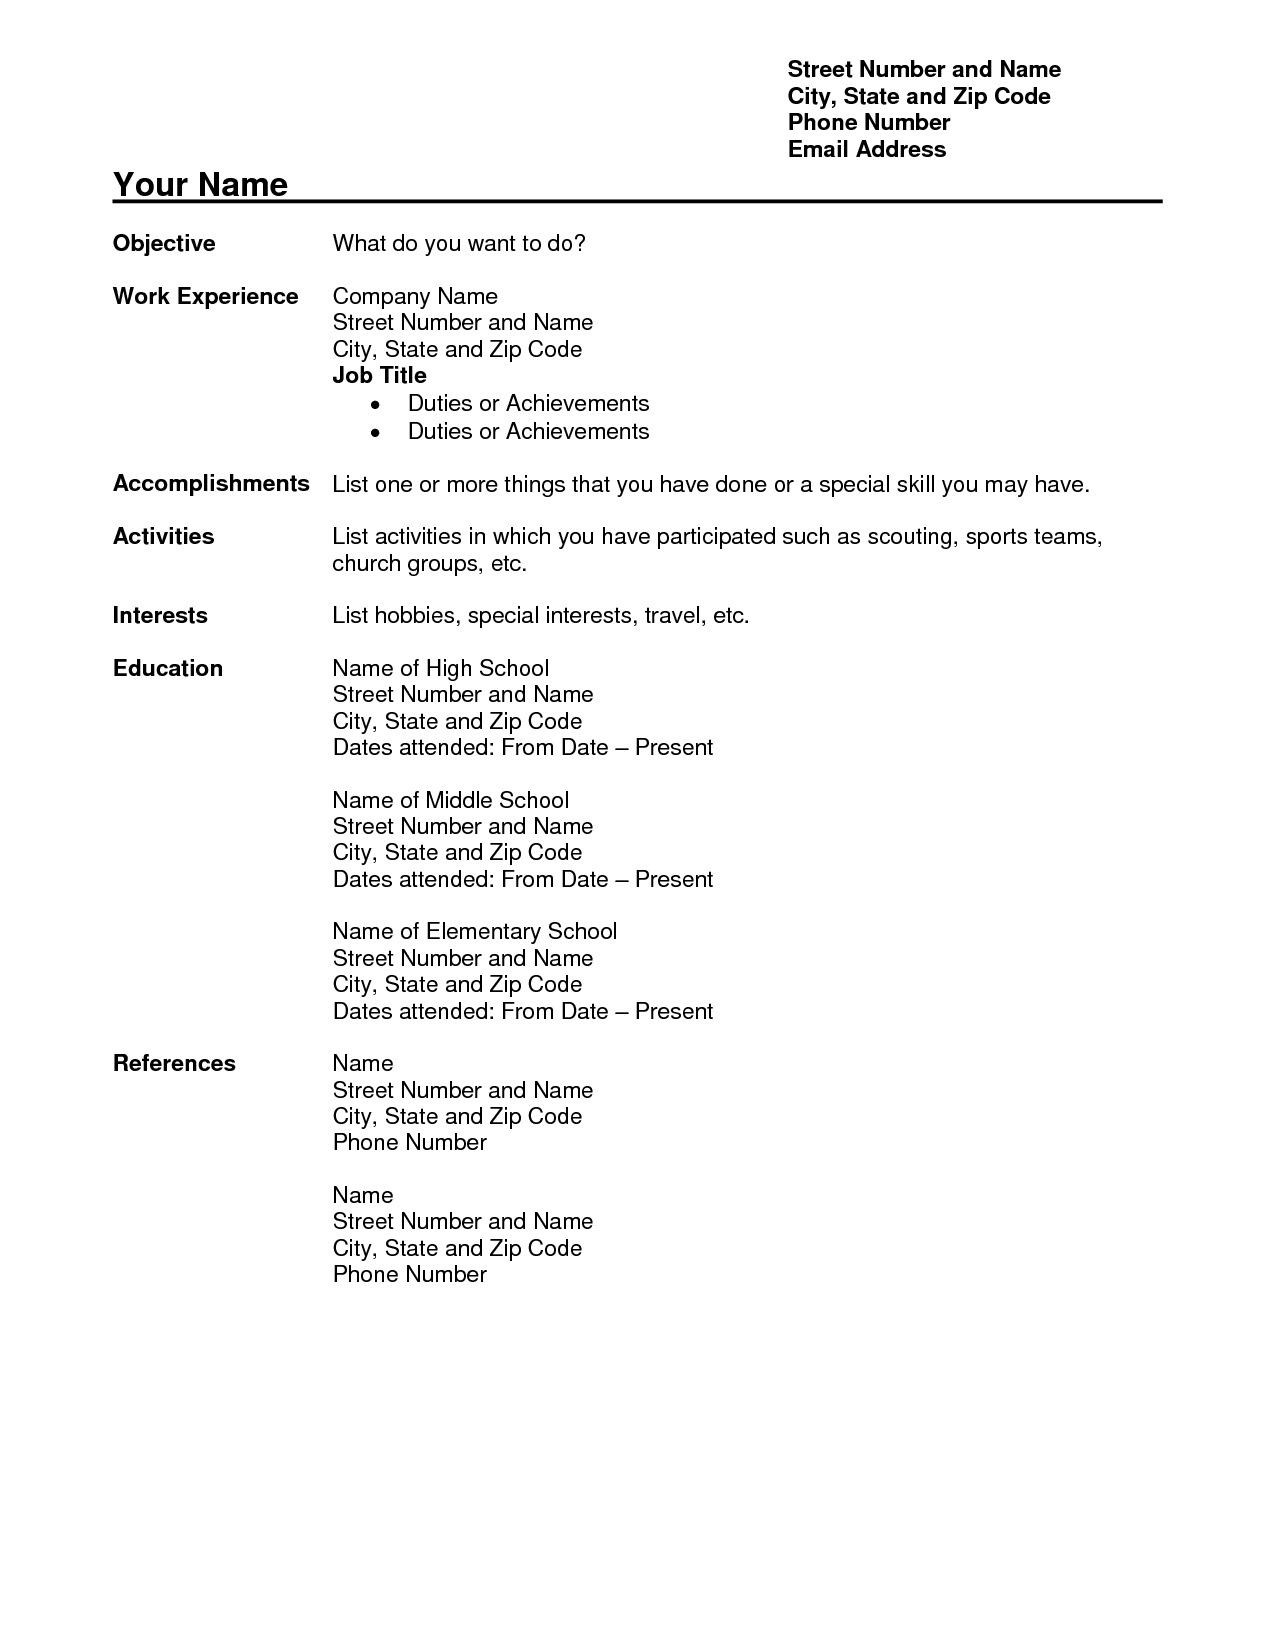 Free Teacher Resume Templates Download Free Teacher Resume Templates  Download, Free Teacher Resume Templates Microsoft  Resume Sample Download